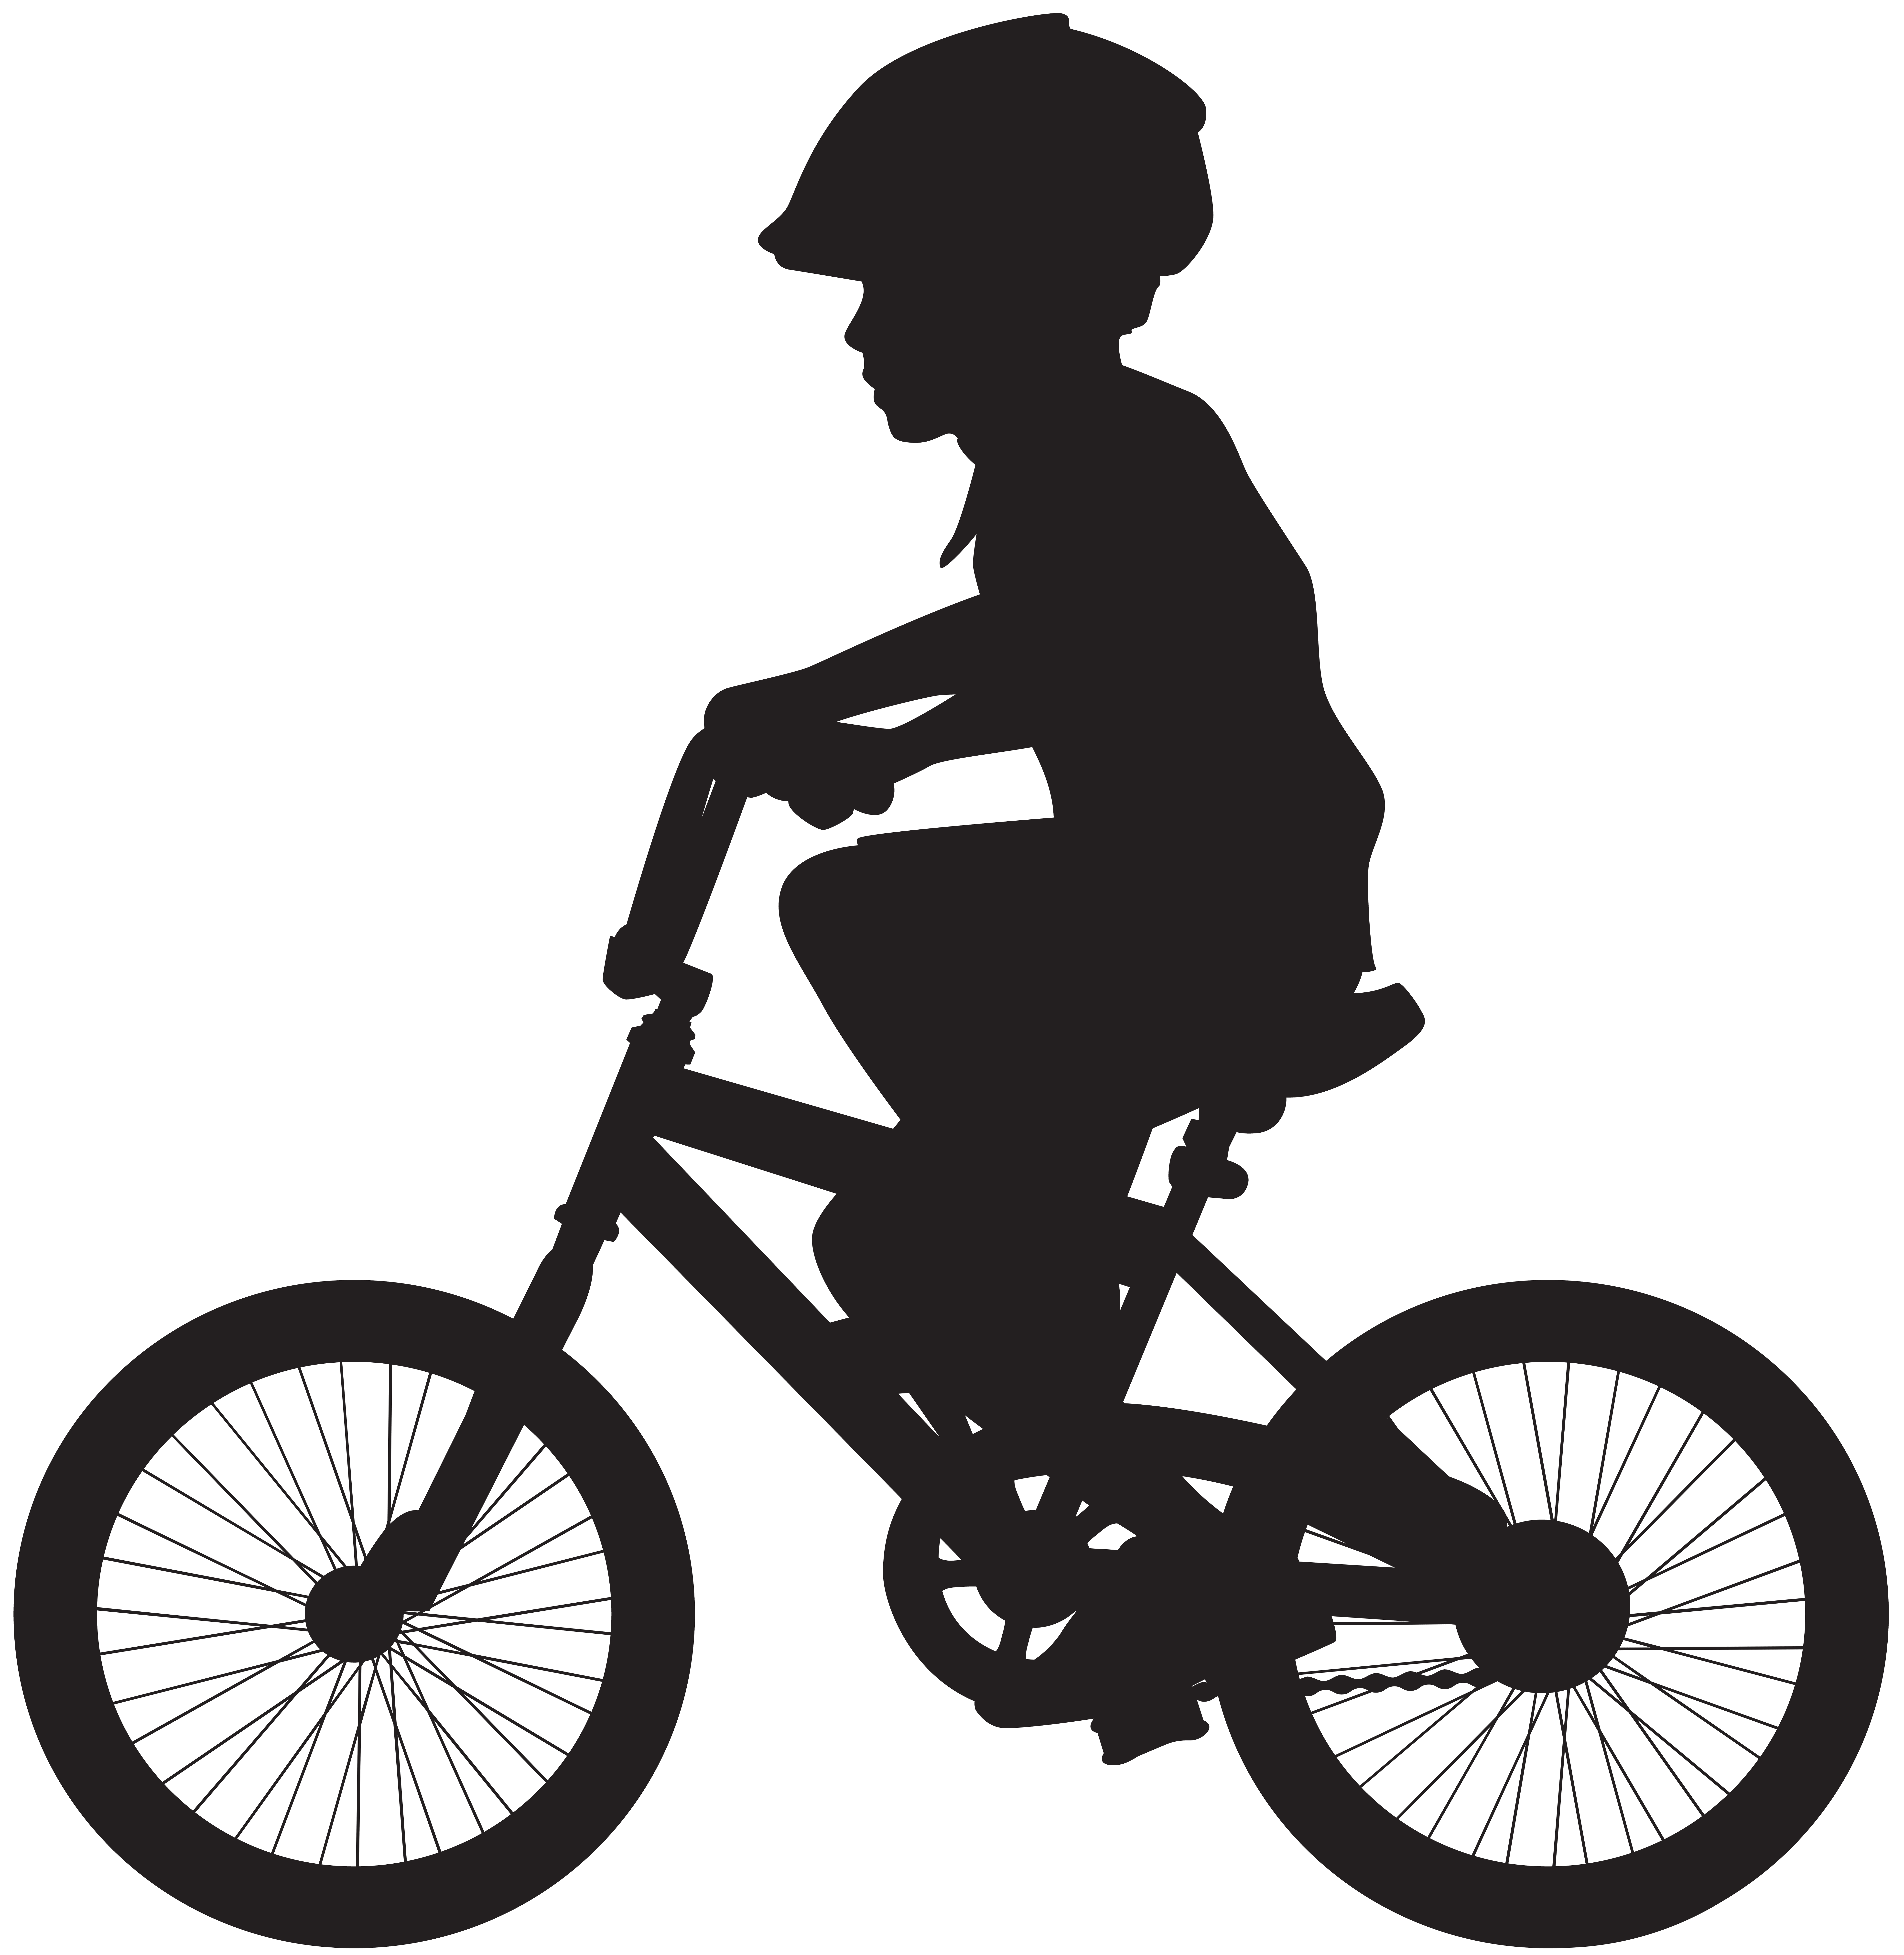 Mountain clipart silhouette. Bicycle bike cycling illustration